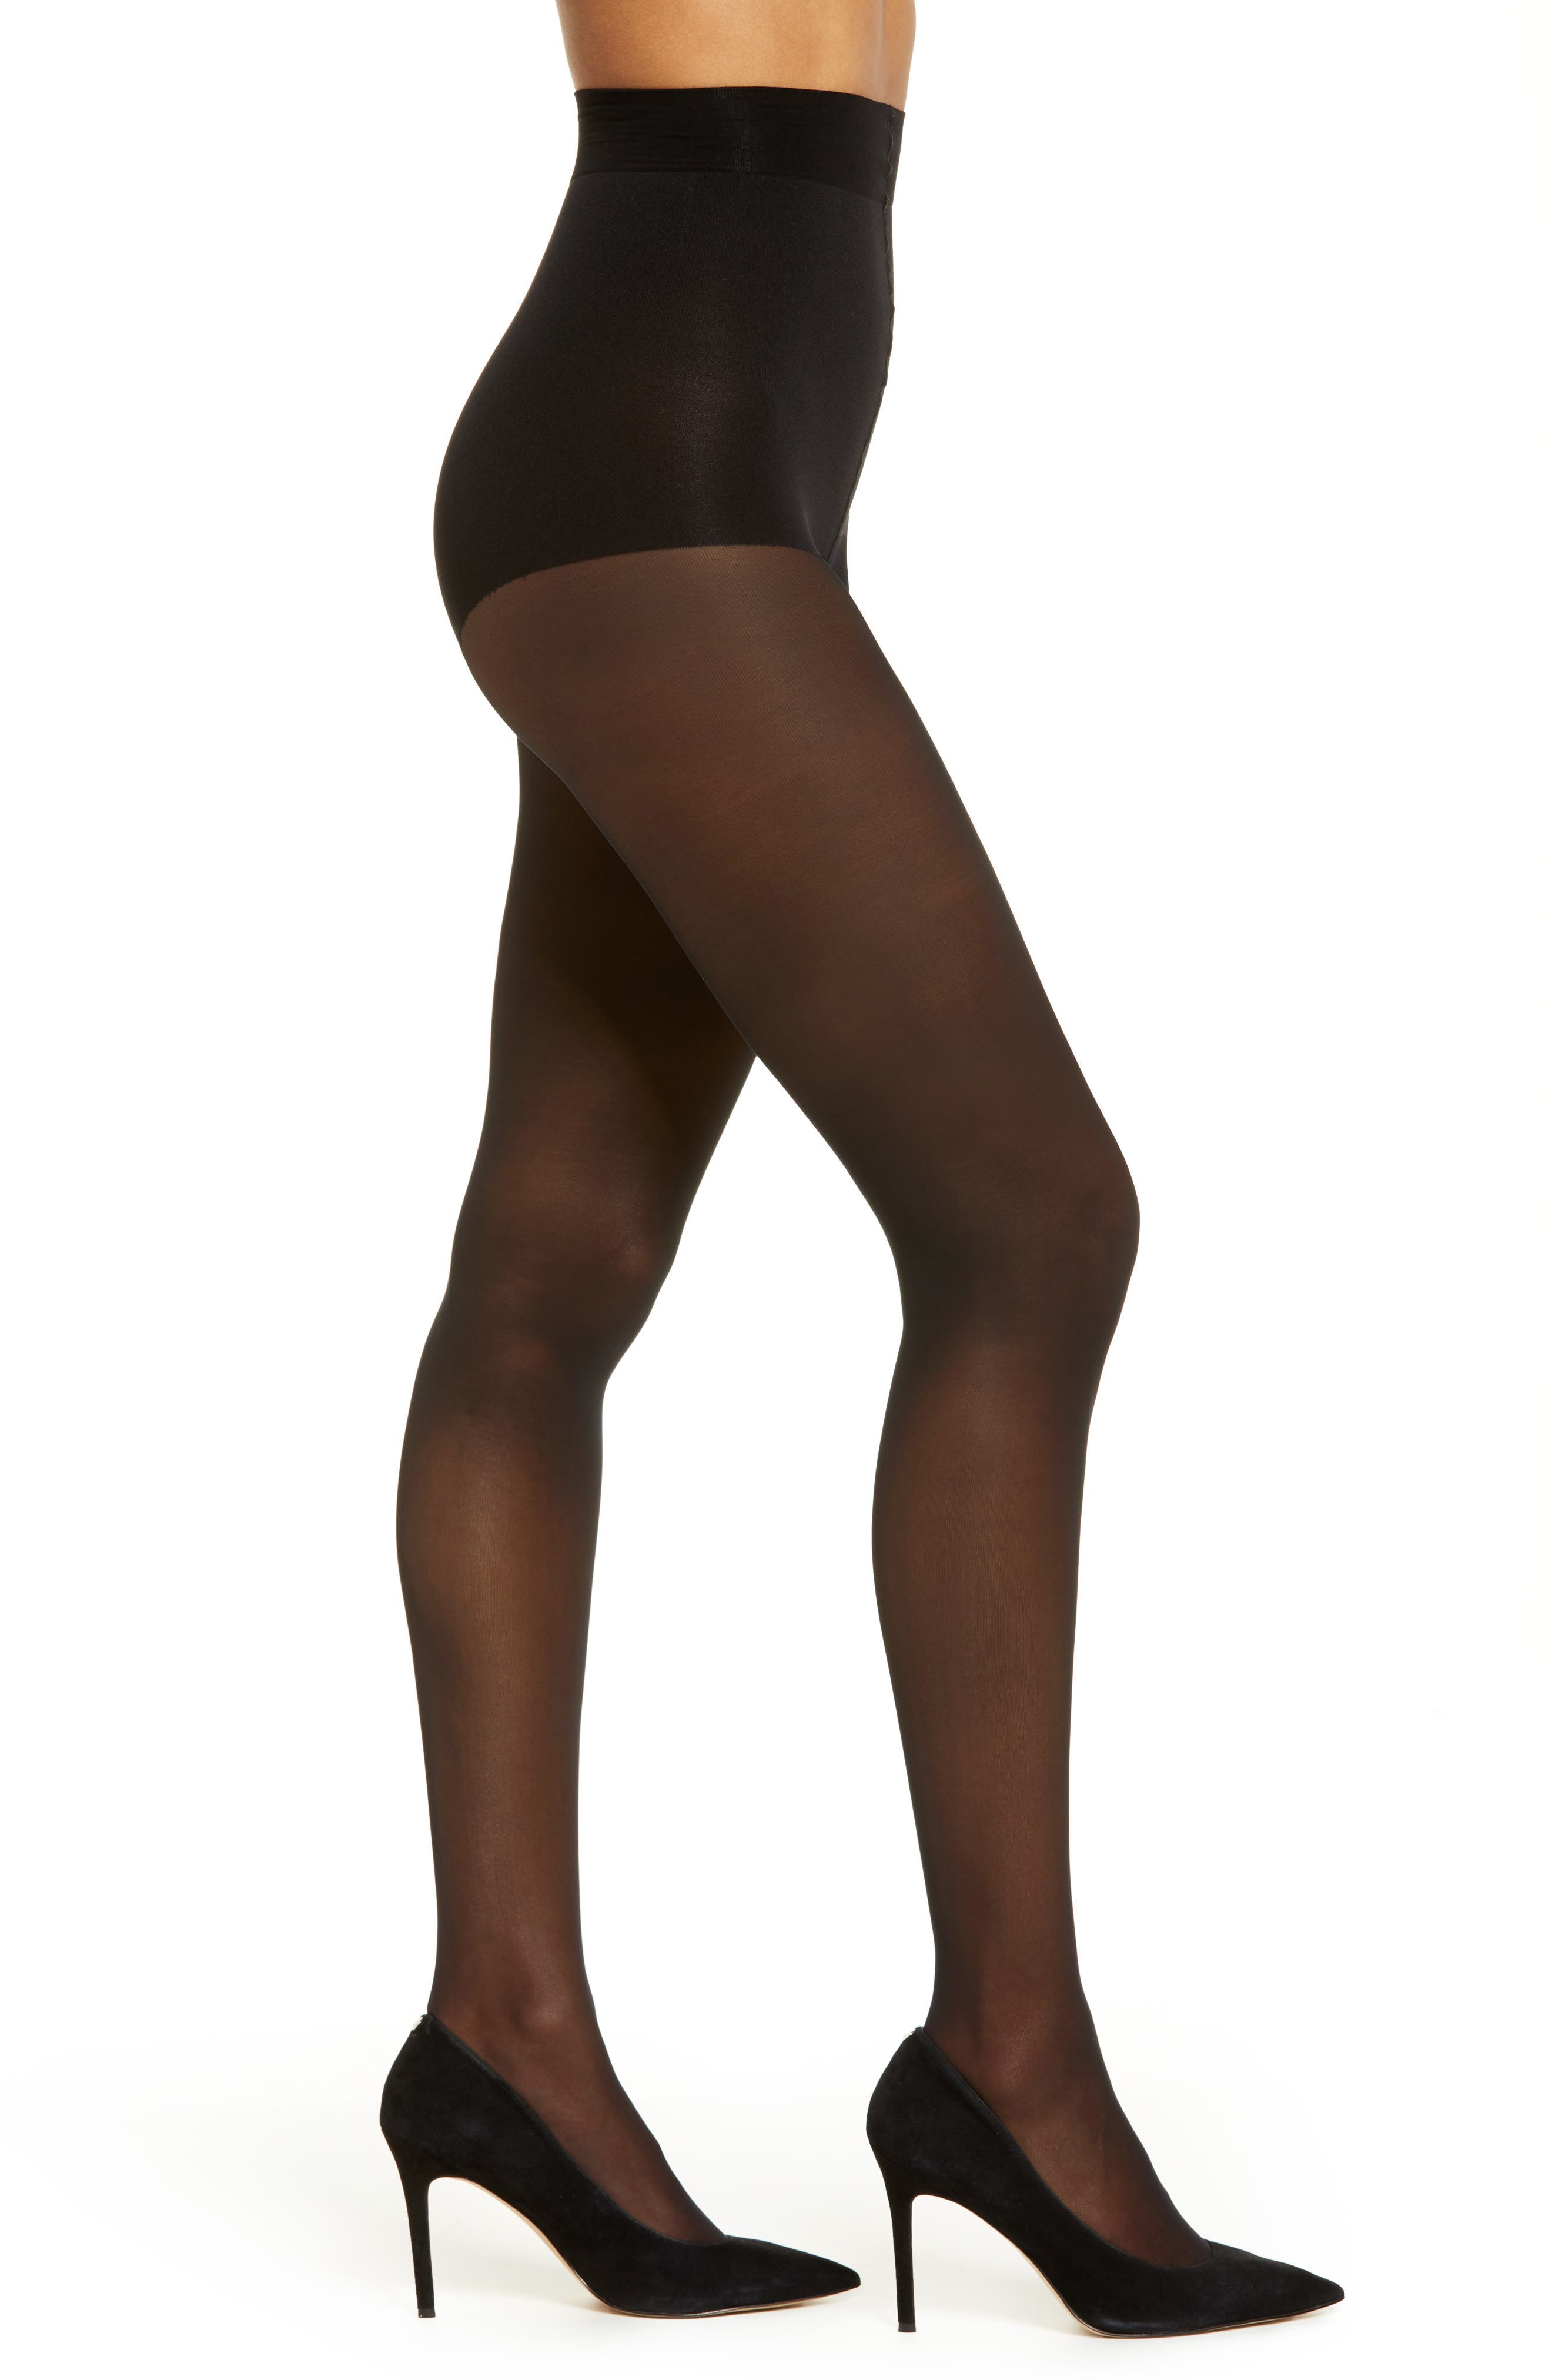 PLUS SIZE Hold ups 20 den Sheer Lace Top XL 4XL New Stockings